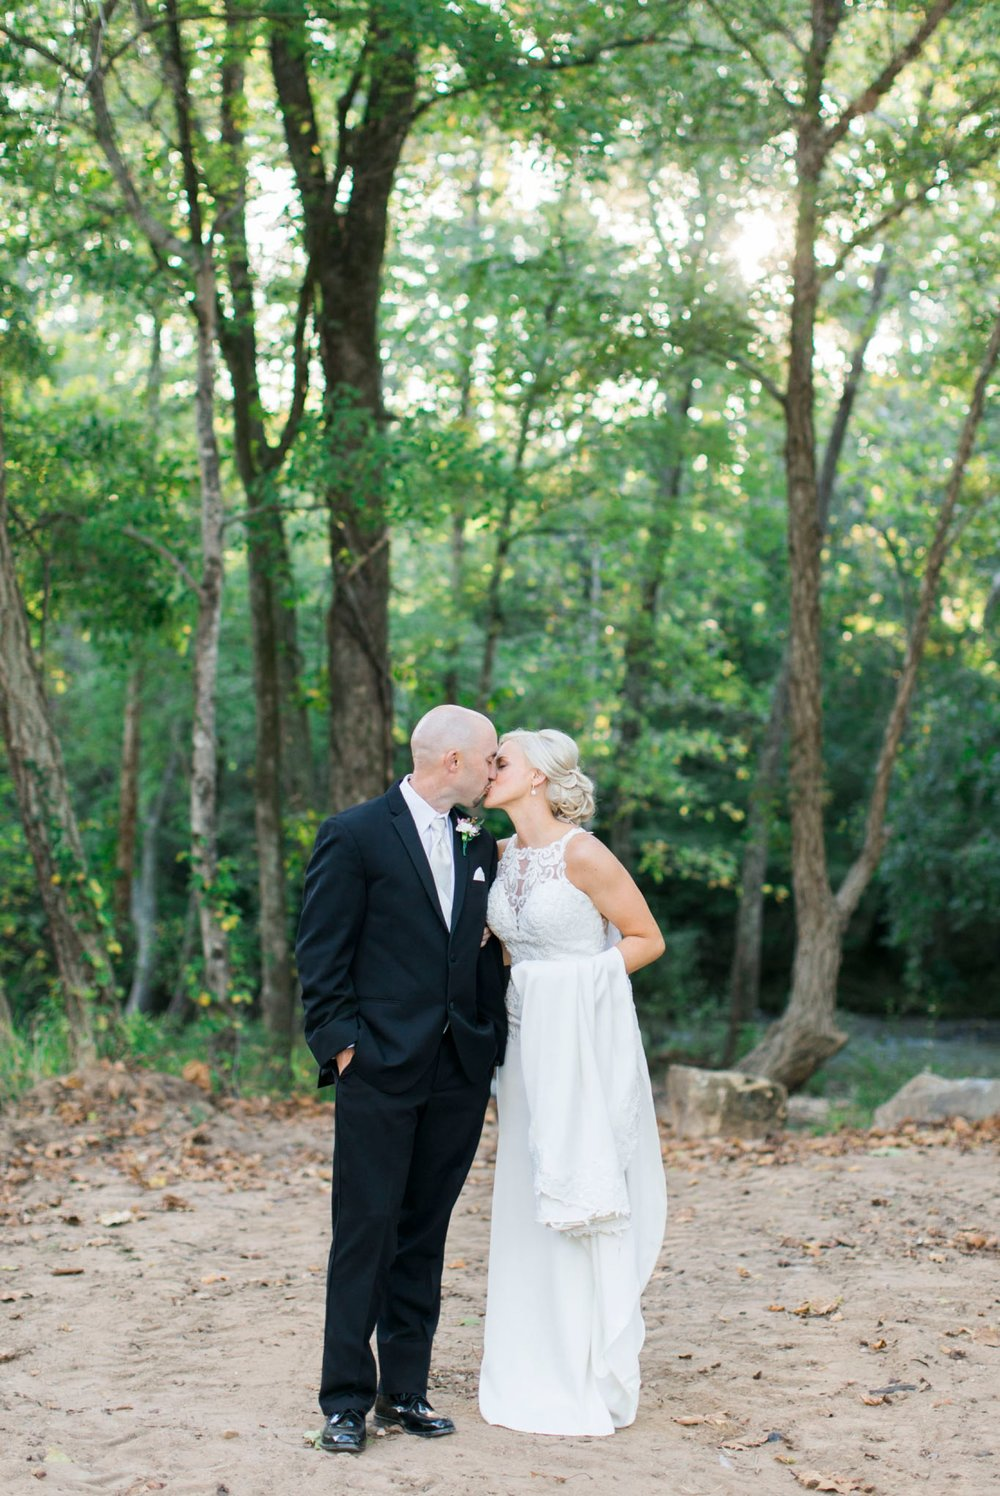 TheMillHouse_ChathamVA_WeddingPhotographer_VirginiaWeddingPhotographer_9.jpg 112.jpg